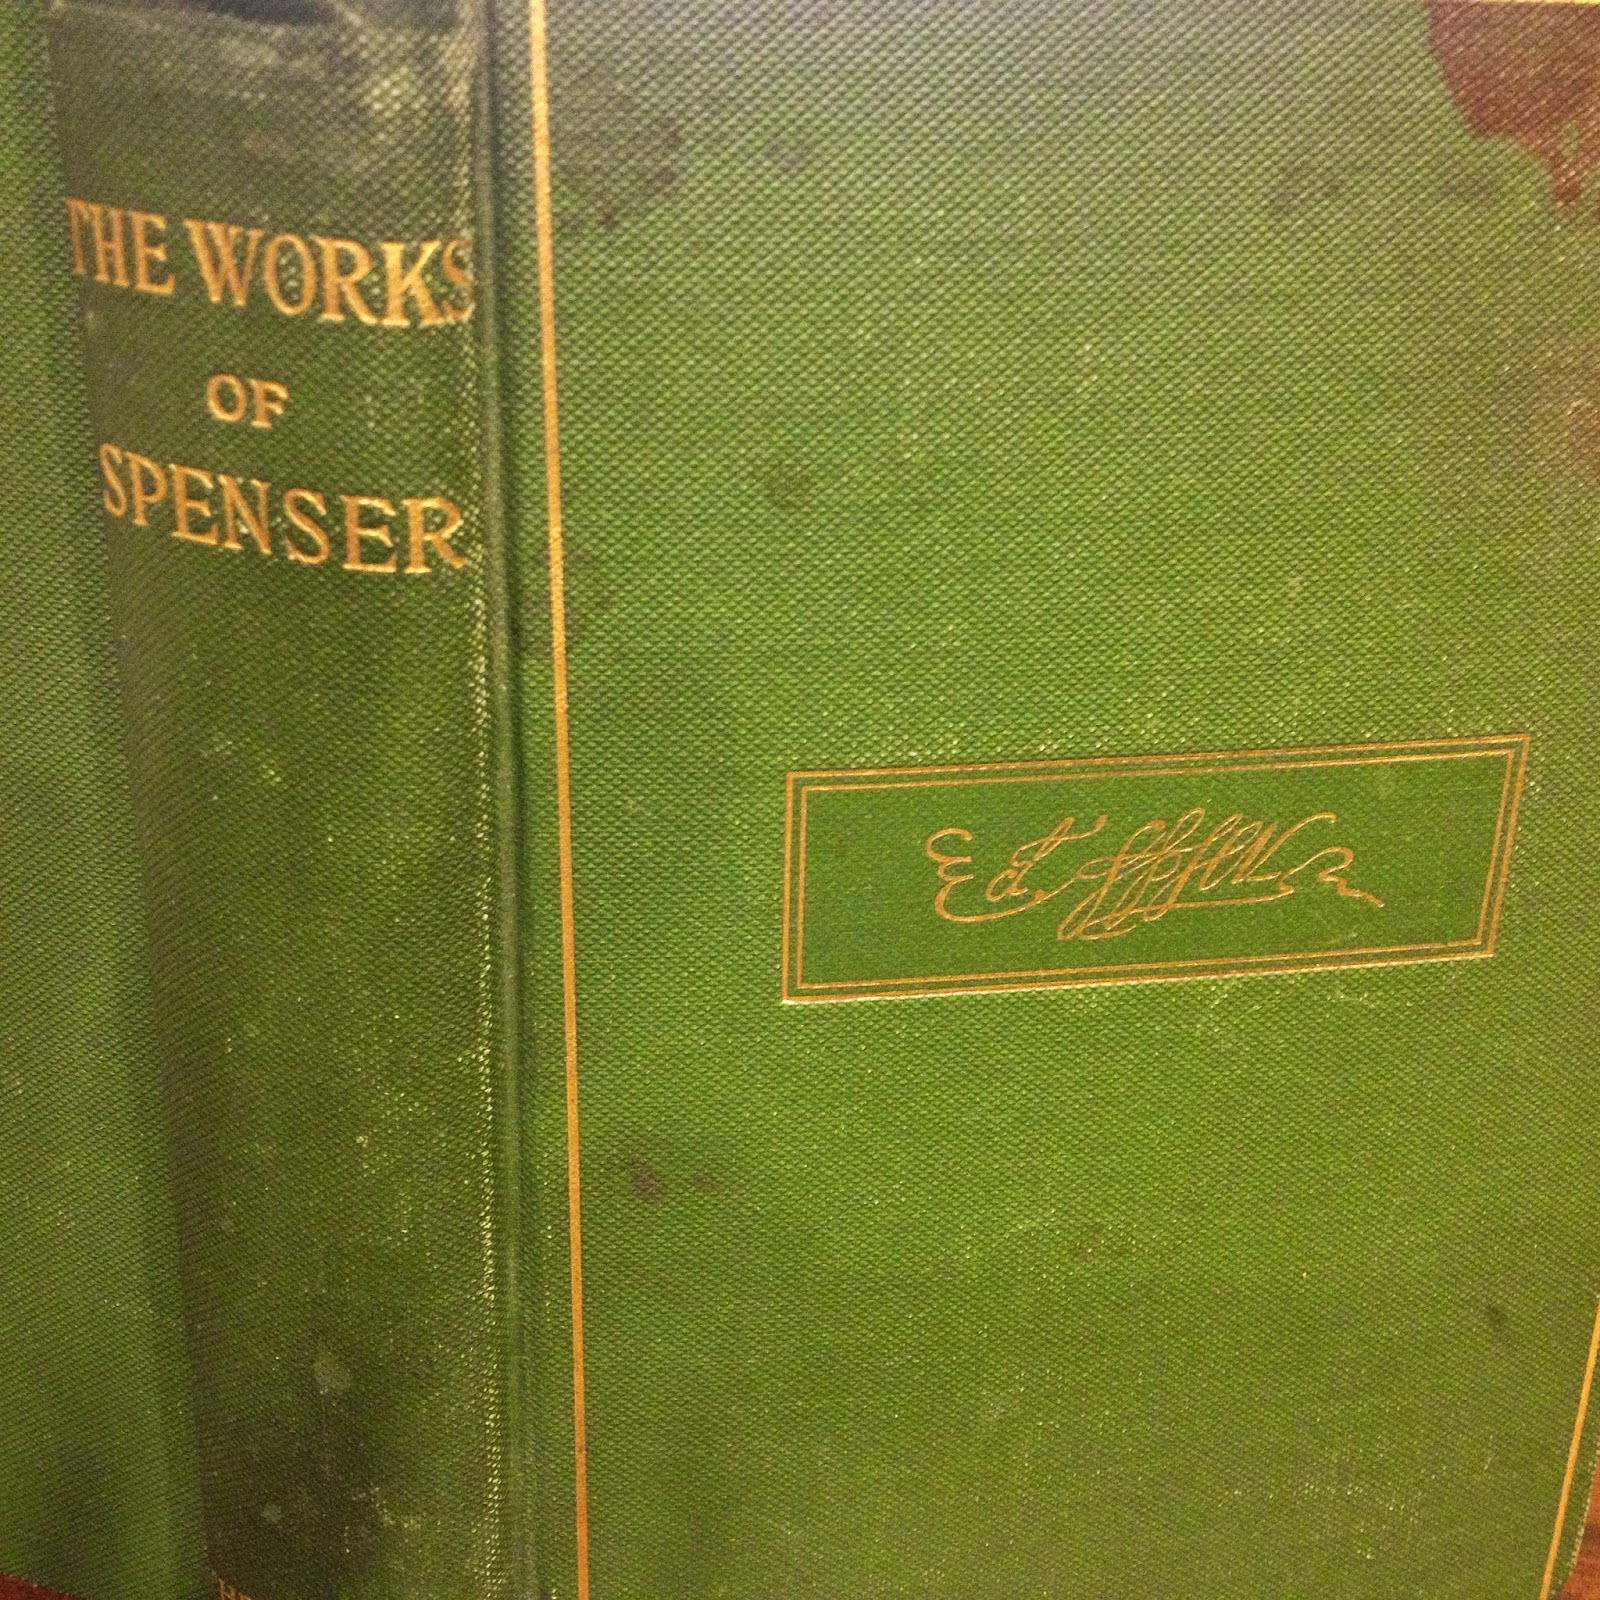 Works of Spenser